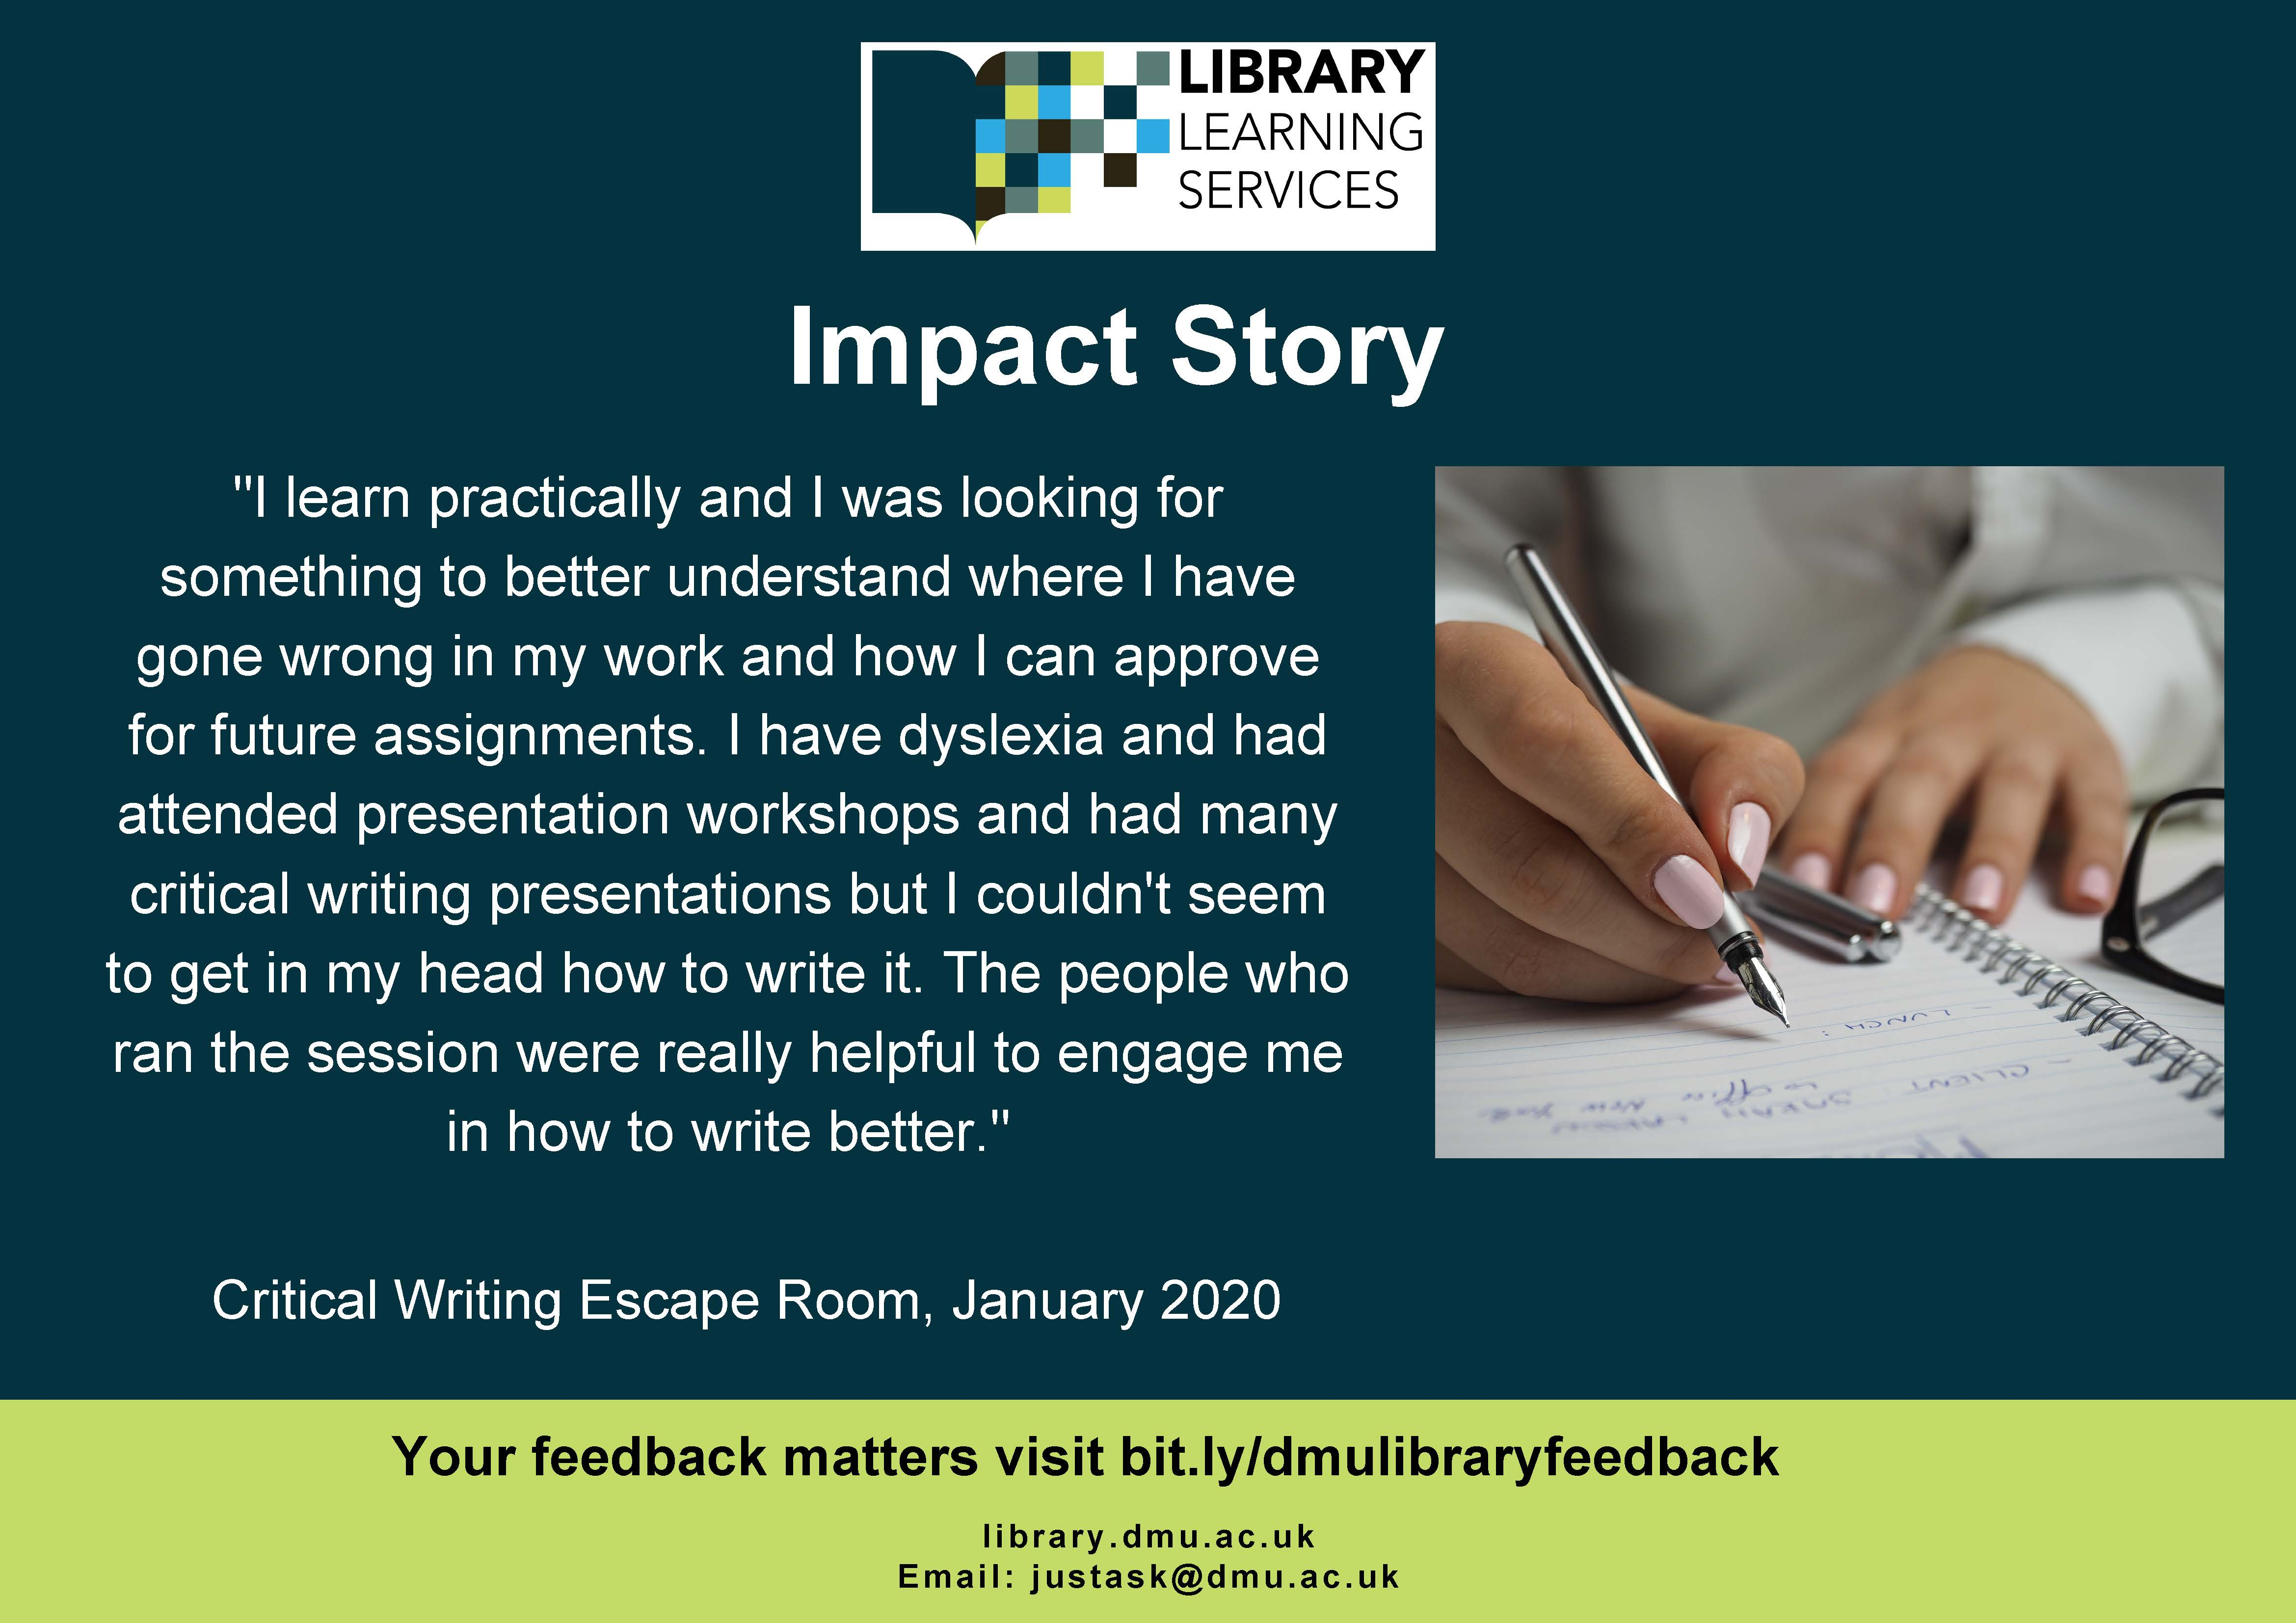 """Impact Story: """"I learn practically and I was looking for something to better understand where I have gone wrong in my work and how I can approve for future assignments. I have dyslexia and had attended presentation workshops and had many critical writing presentations but I couldn't seem to get in my head how to write it. The people who ran the session were really helpful to engage me in how to write better."""" Critical Writing Escape Room, January 2020. Your feedback matters visit bit.ly/dmulibraryfeedback"""